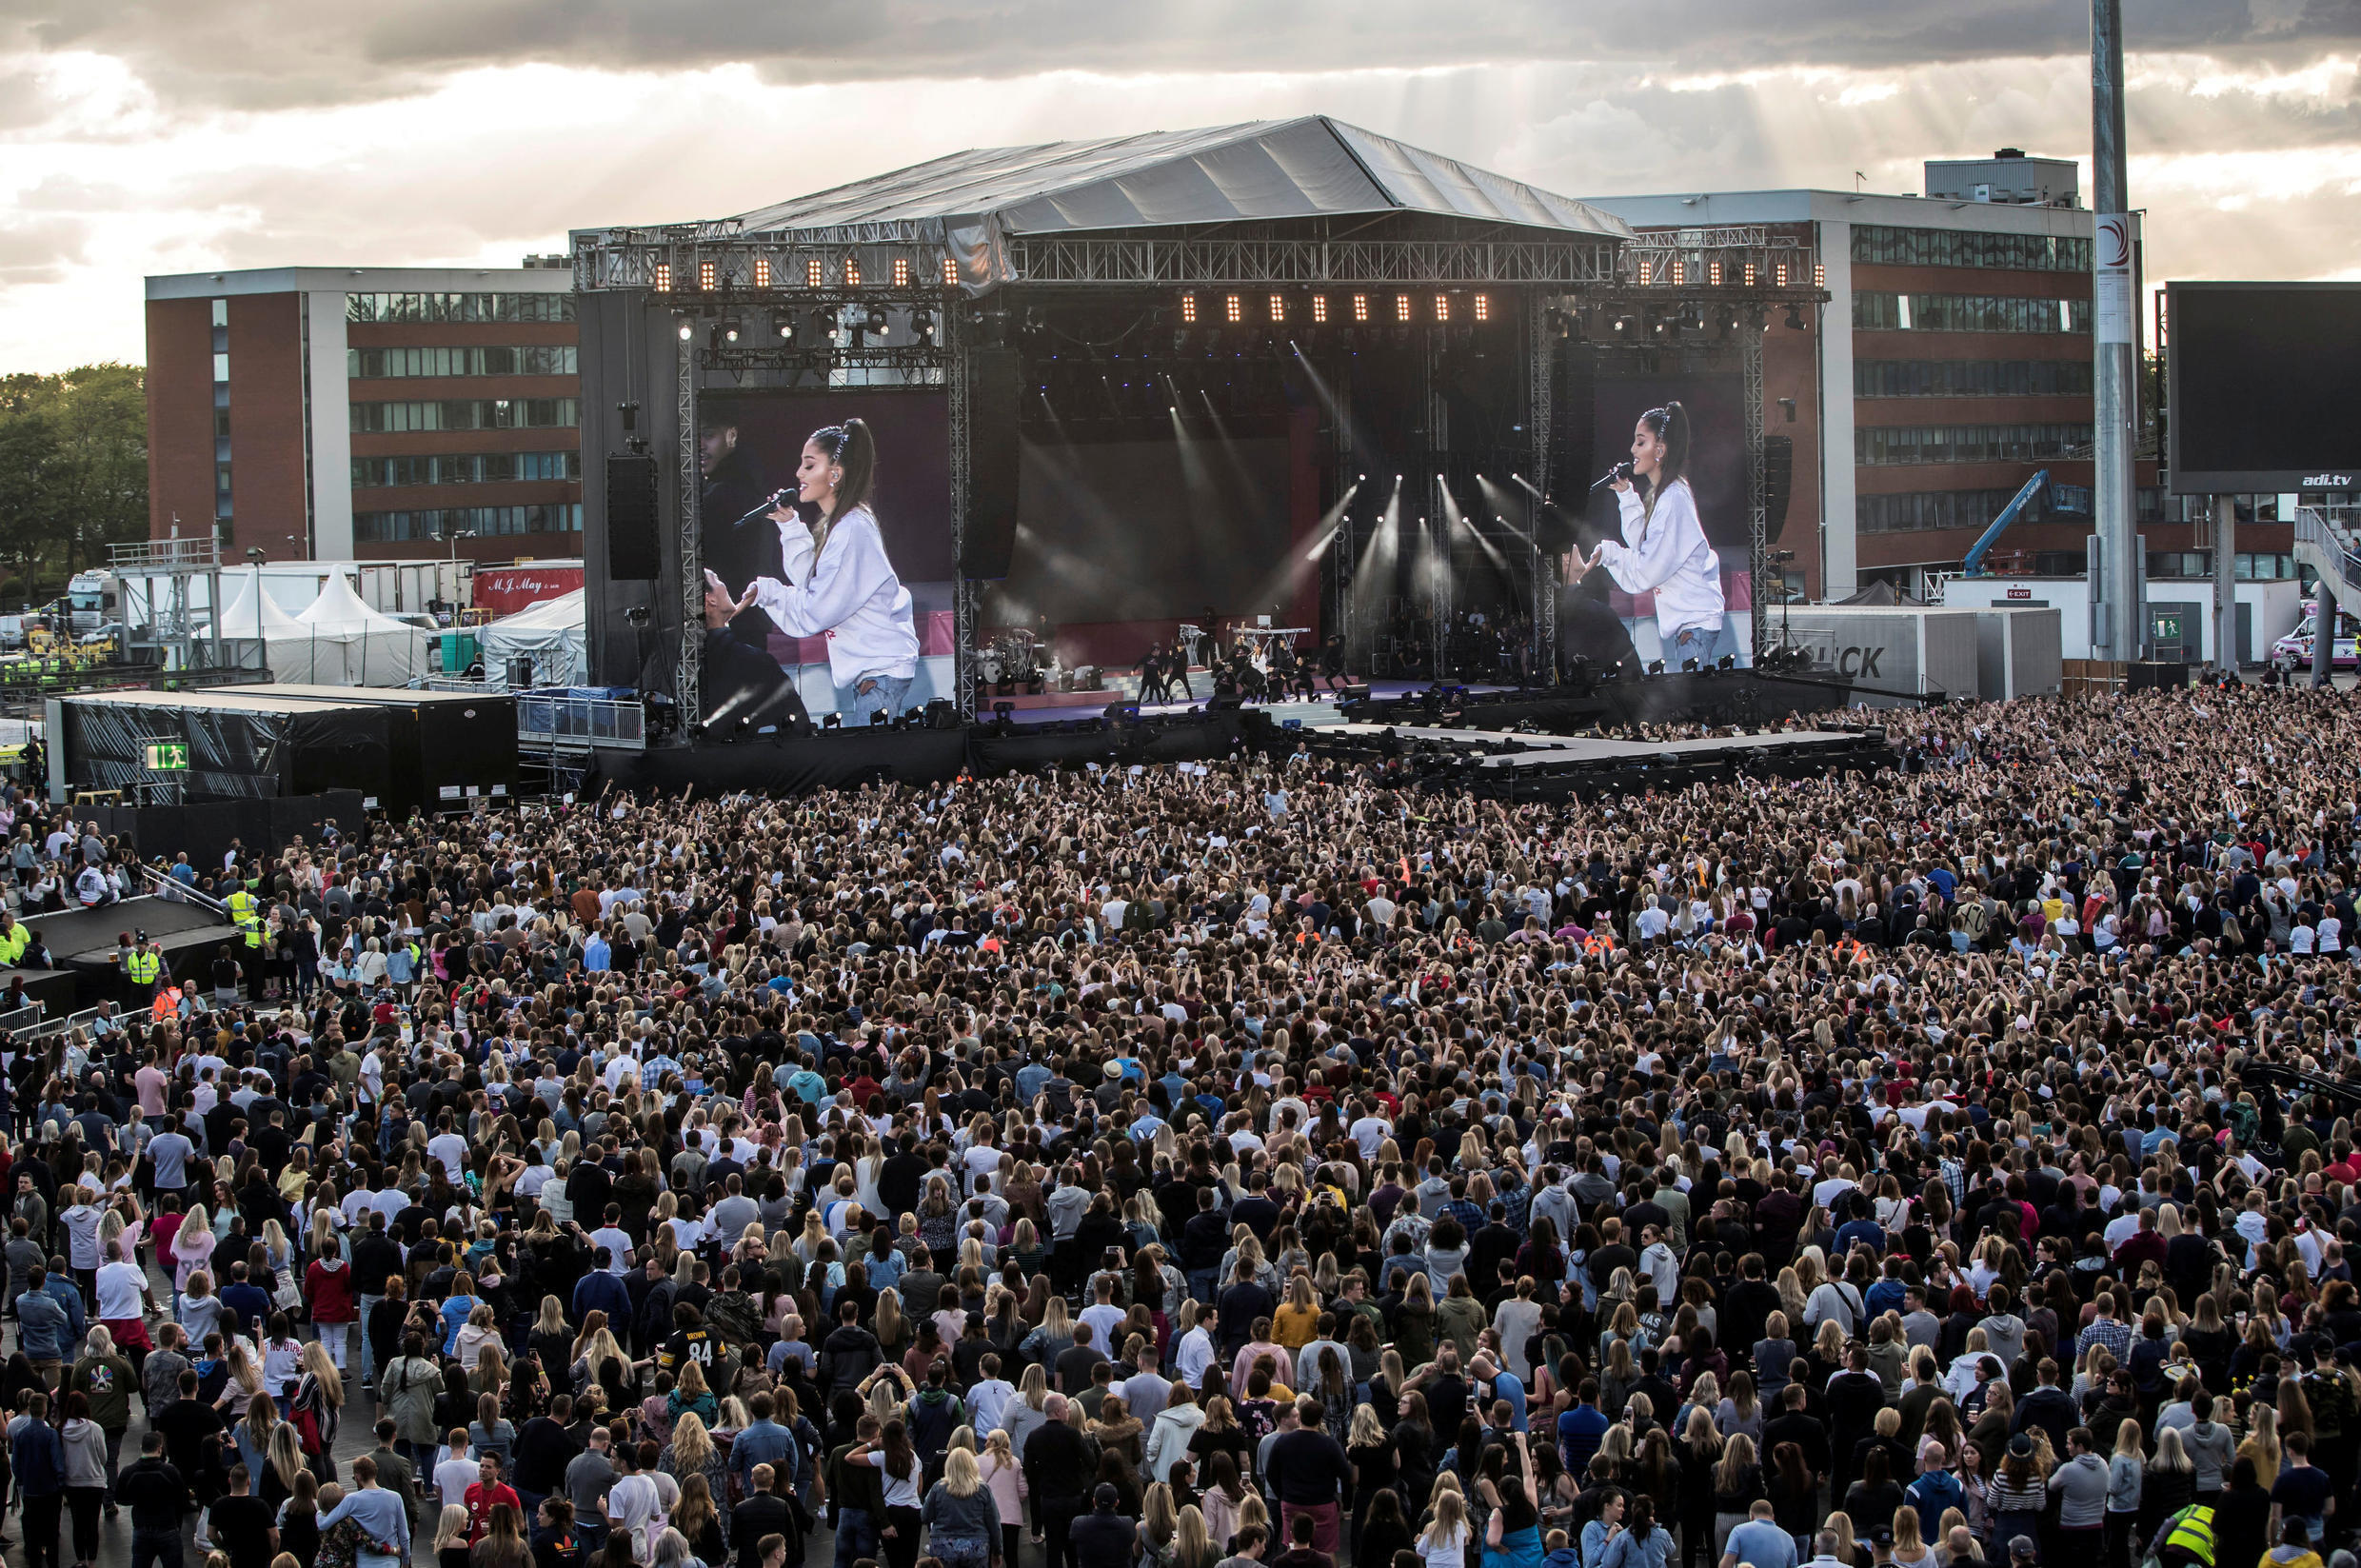 Ariana Grande performs during the One Love Manchester benefit concert for the victims of the Manchester Arena terror attack at Emirates Old Trafford, June 4, 2017